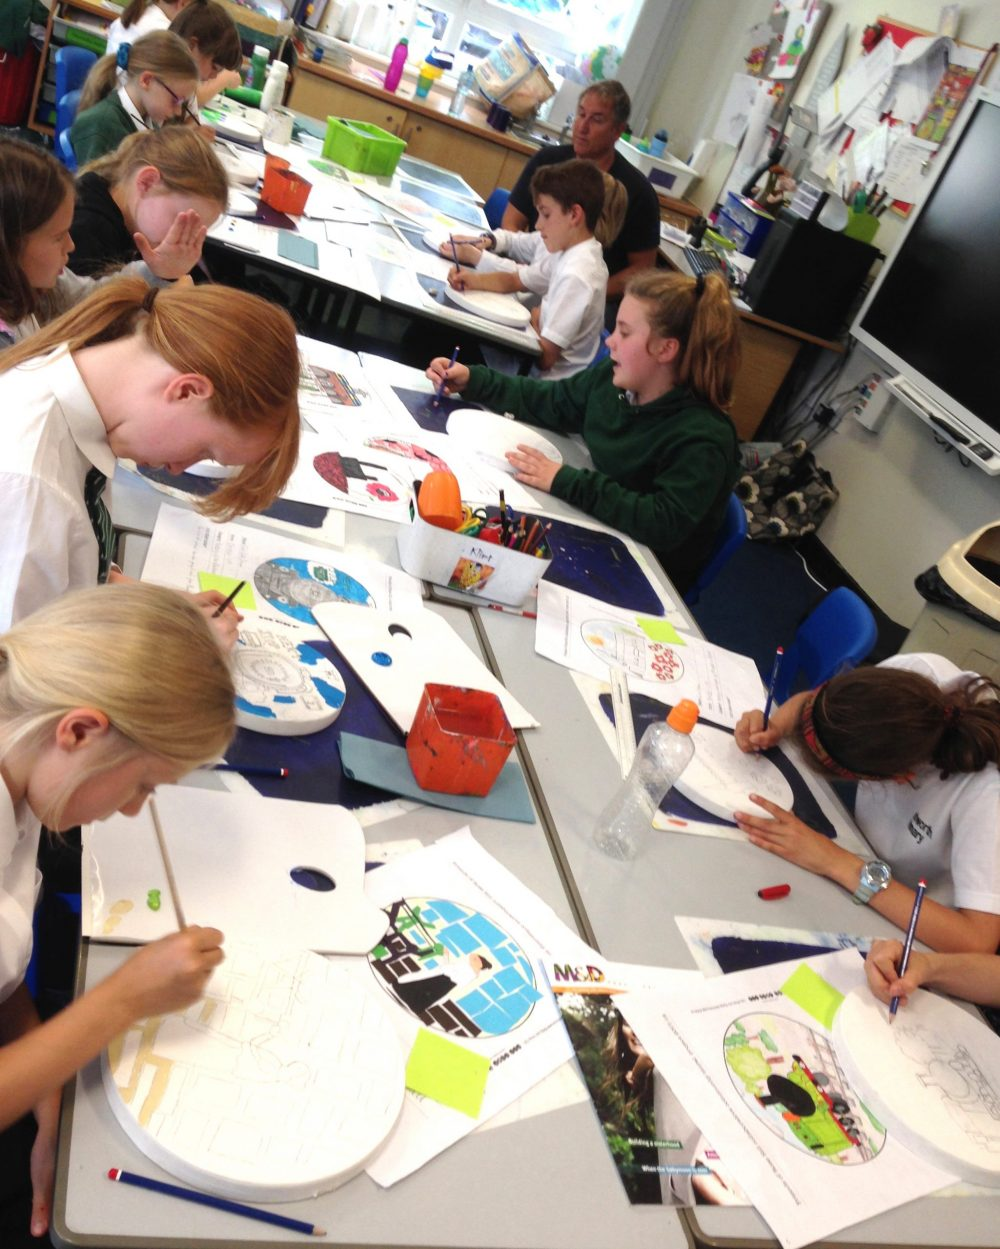 primary school children working on their designs